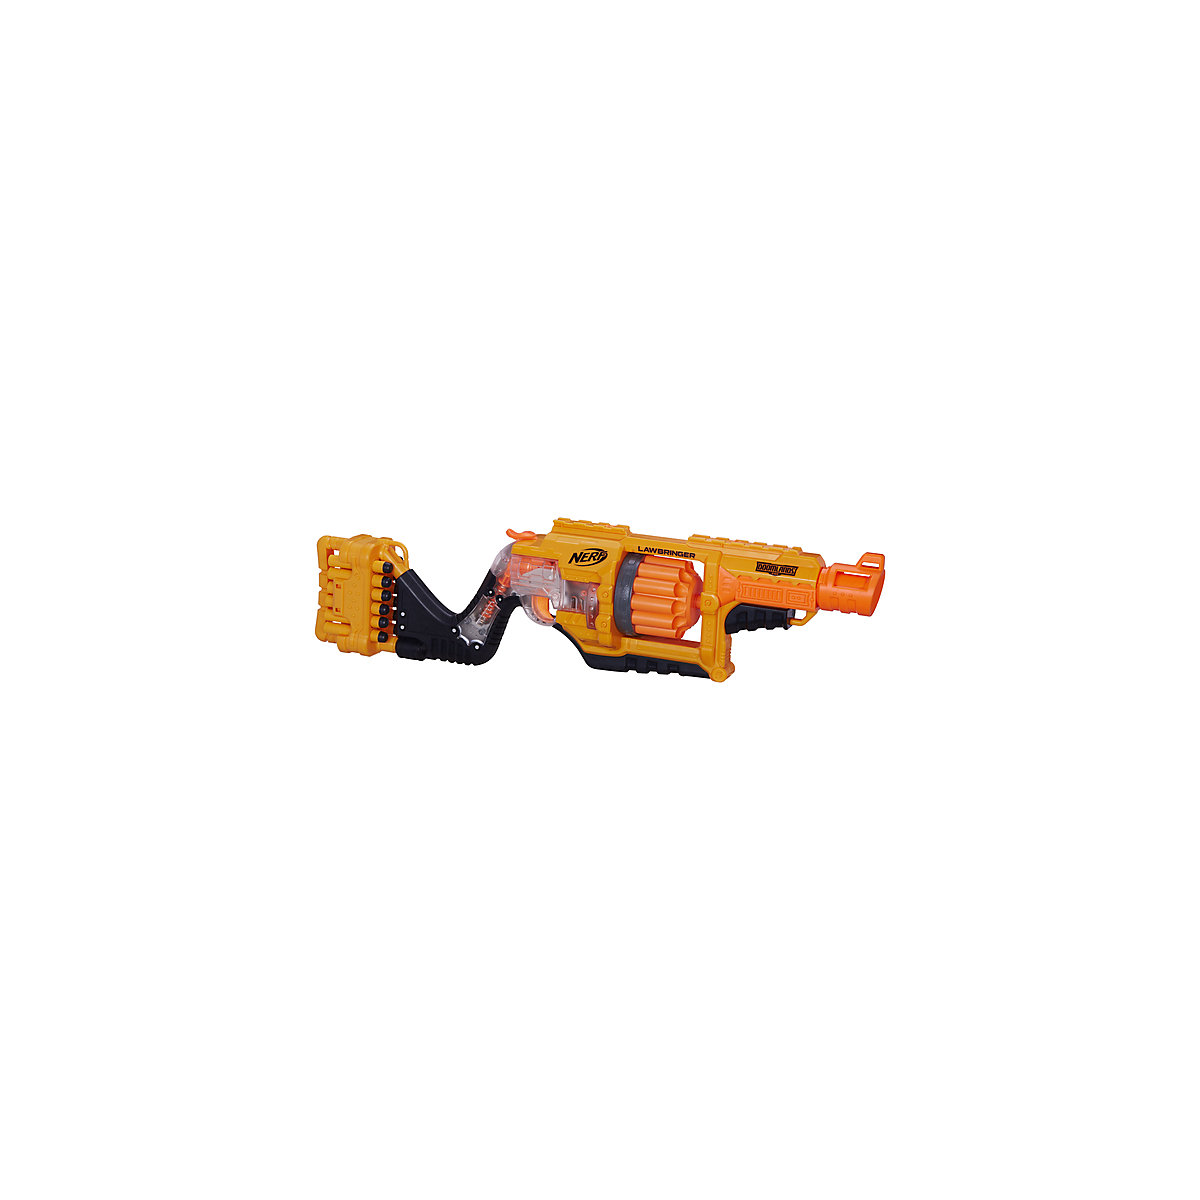 Toy Guns NERF 10023651 Children Kids Toy Gun Weapon Blasters Boys Shooting games Outdoor play tactical x300 pistol gun light 500 lumens high output weapon flashlight fit 20mm picatinny weaver rail